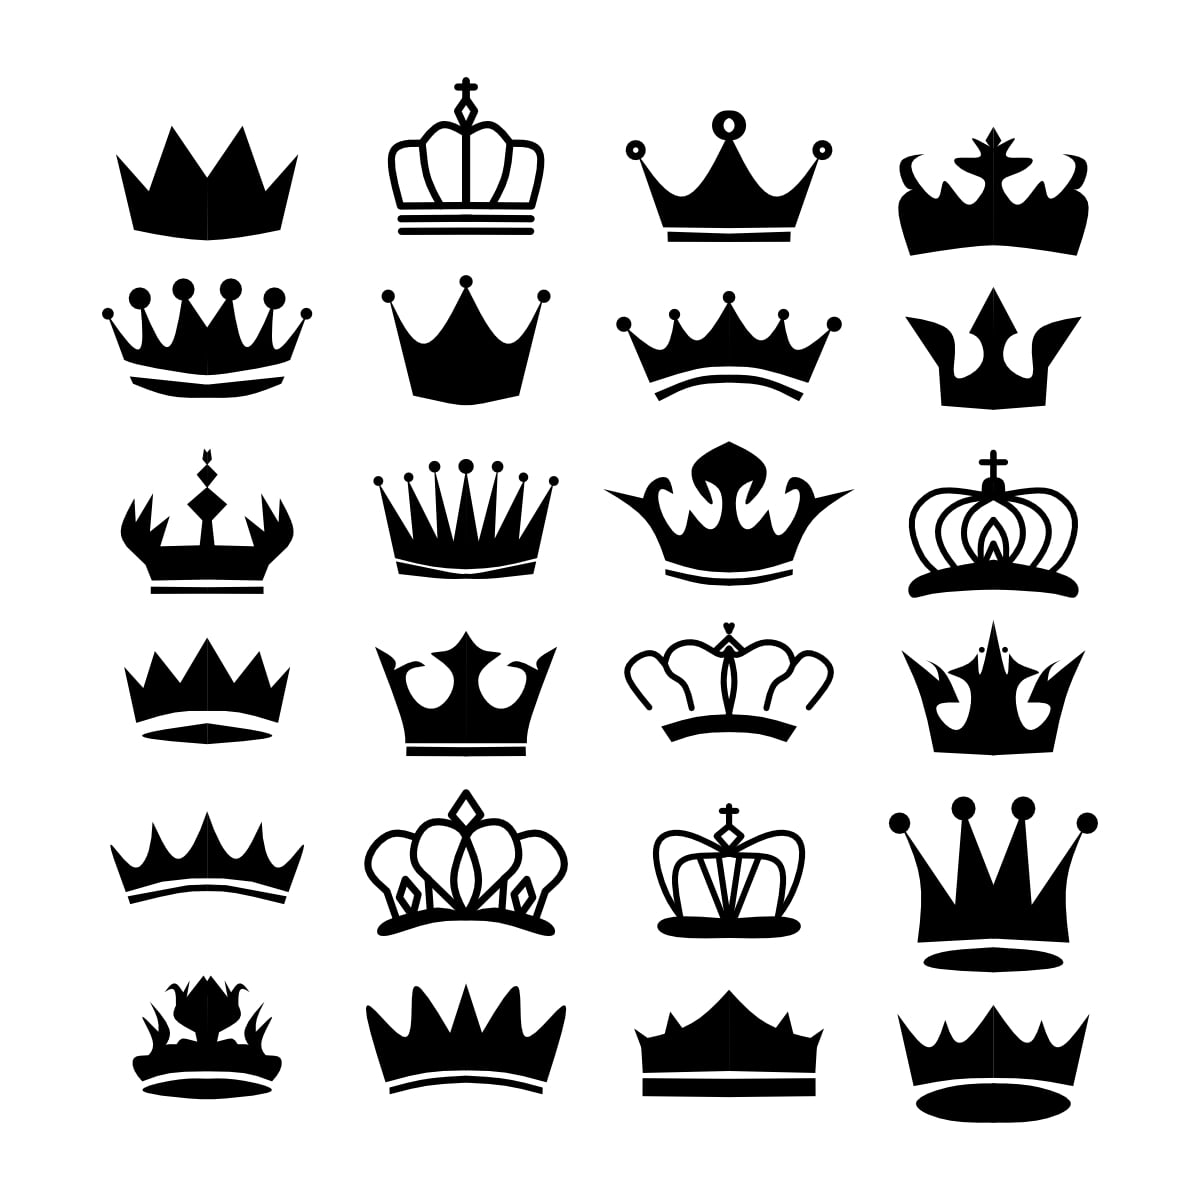 Royal crown silhouette. king crowns, majestic coronet and luxury tiara silhouettes set